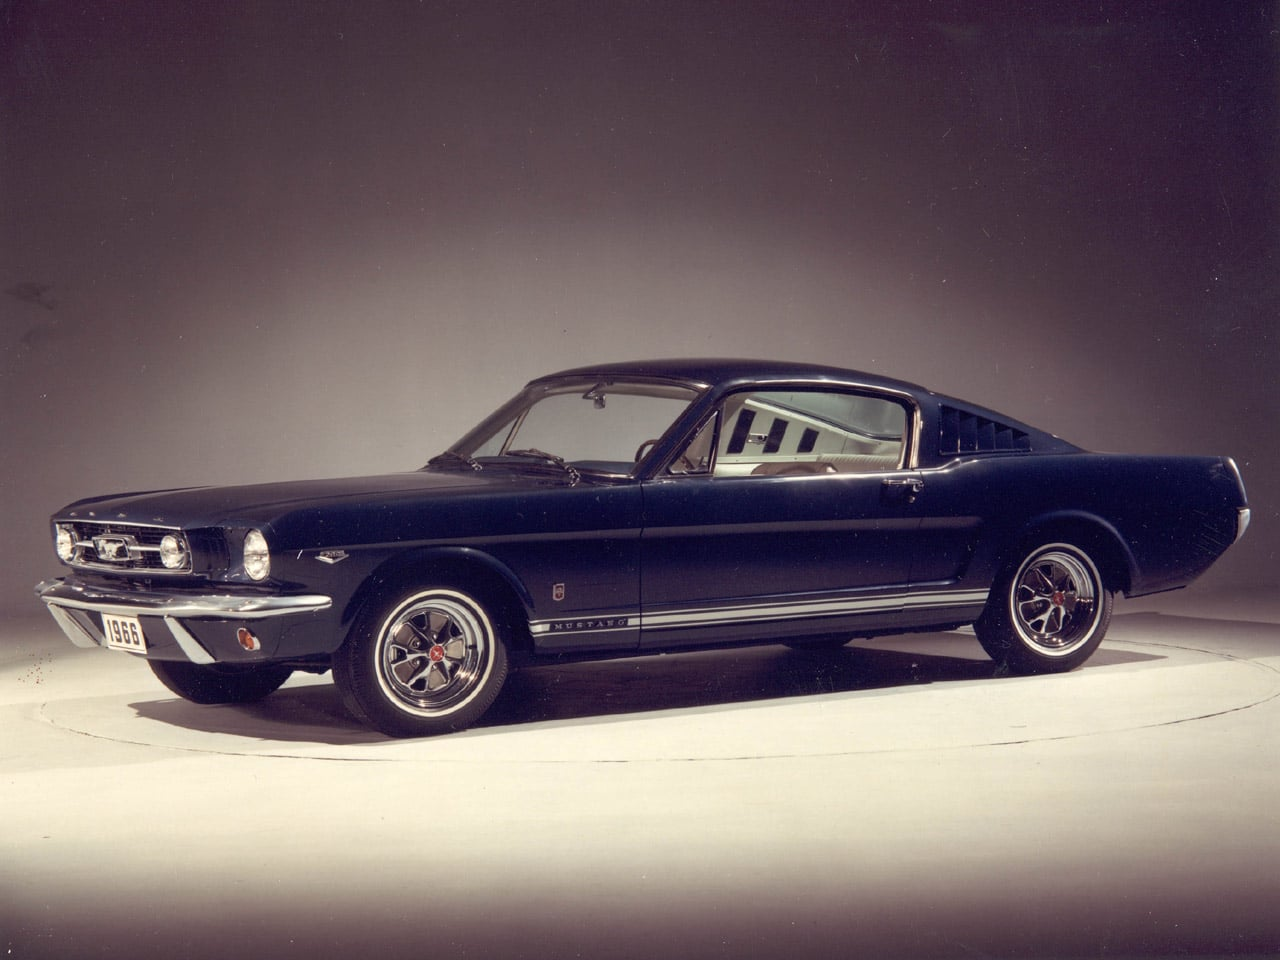 srlg sglsjgsgi slgjslss ford mustang 1960. Black Bedroom Furniture Sets. Home Design Ideas